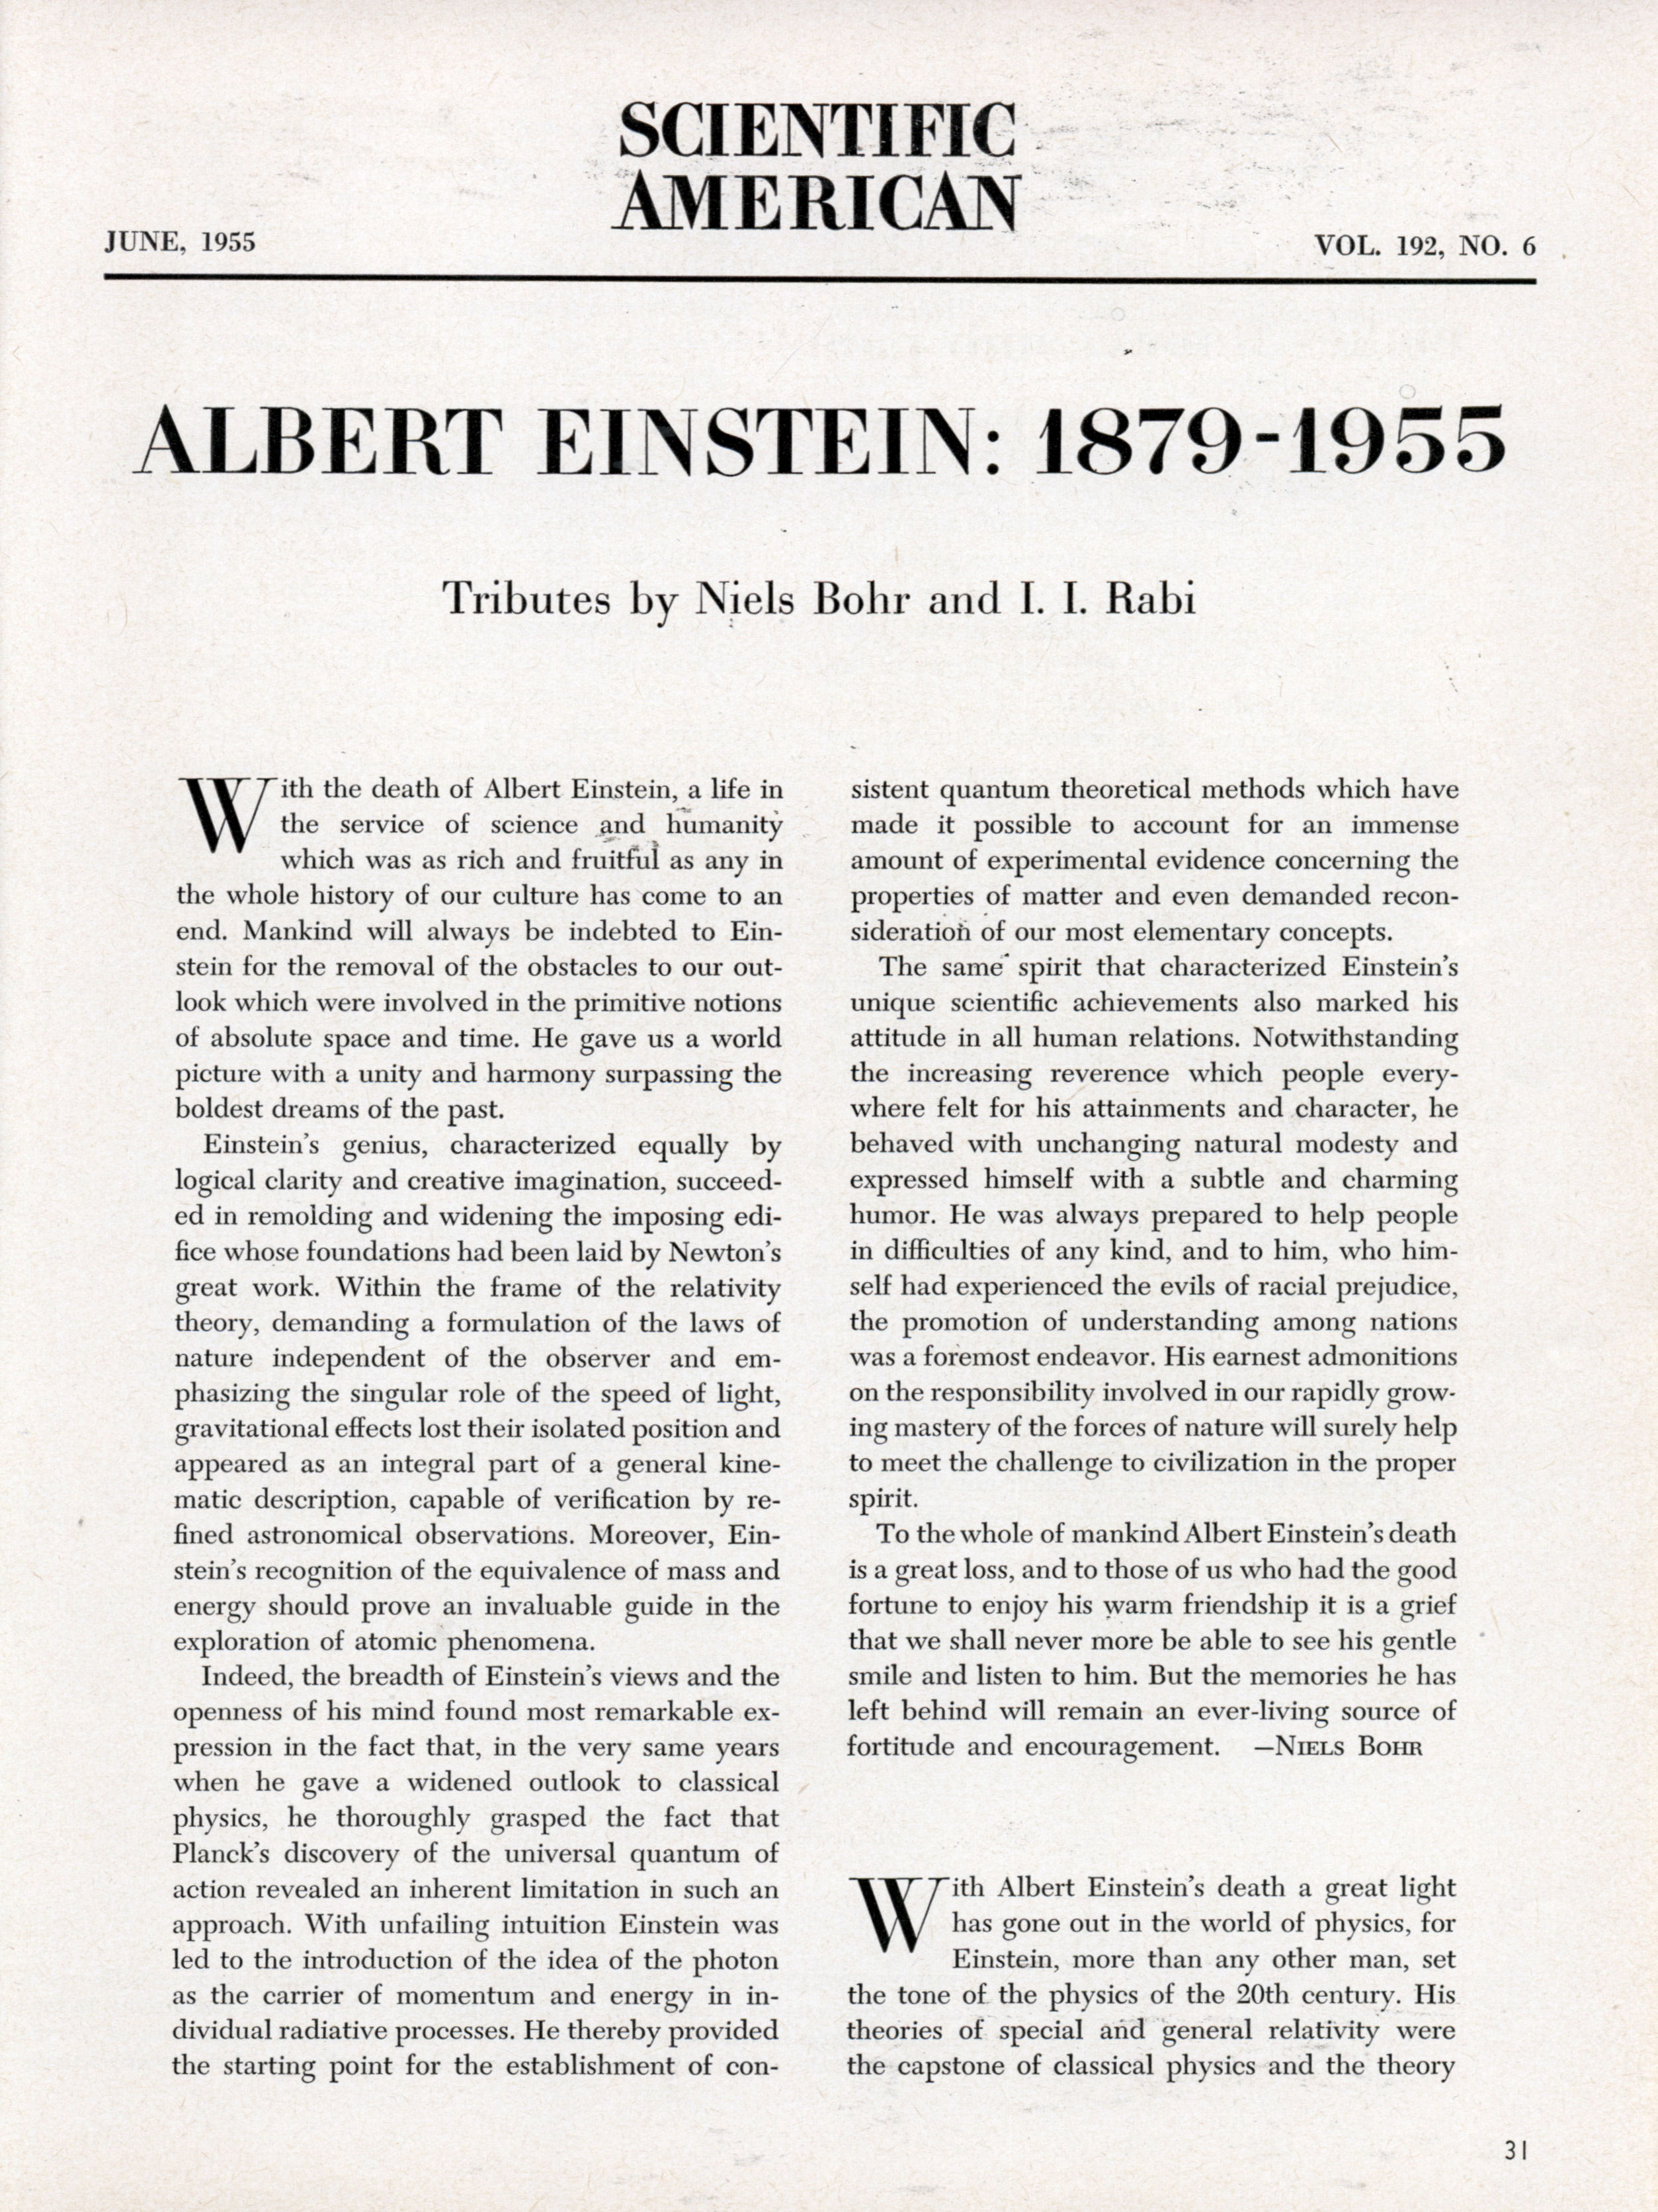 001 Albert Einstein Essay Example Awesome Pdf Essays In Humanism 200 Words Full